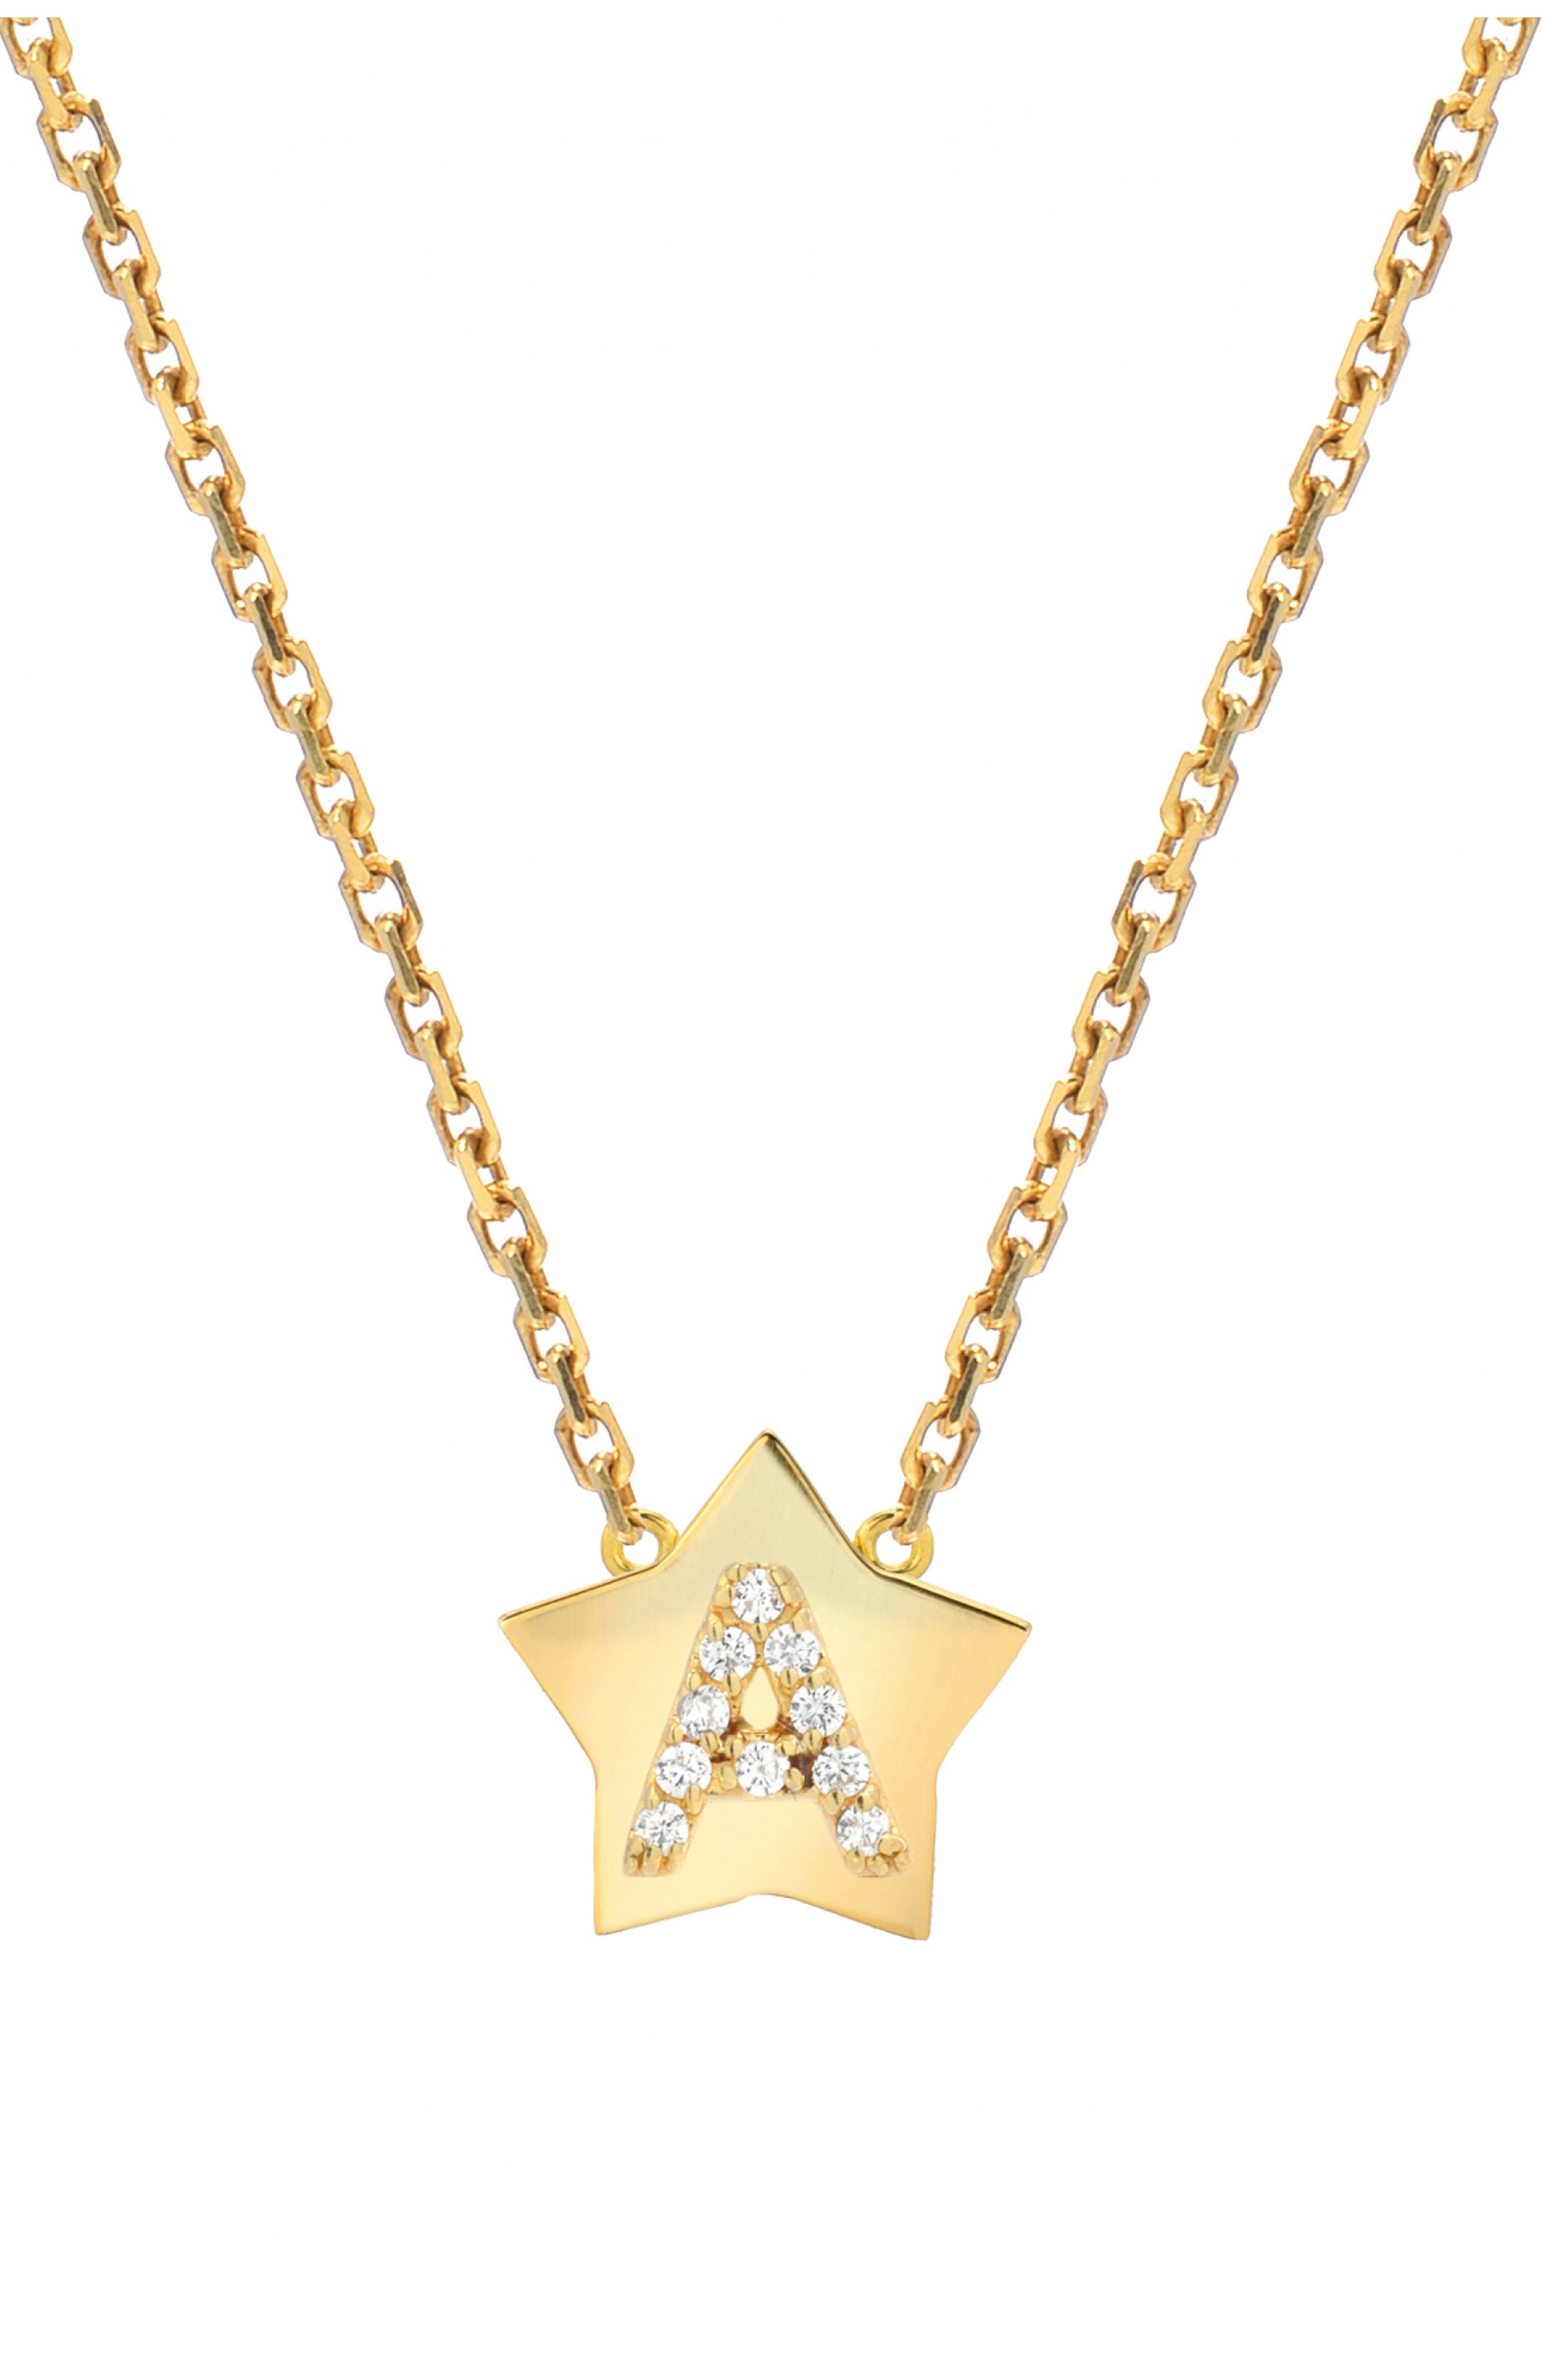 Star-Framed Diamond Initial Pendant Necklace,                             Main thumbnail 1, color,                             YELLOW GOLD-A